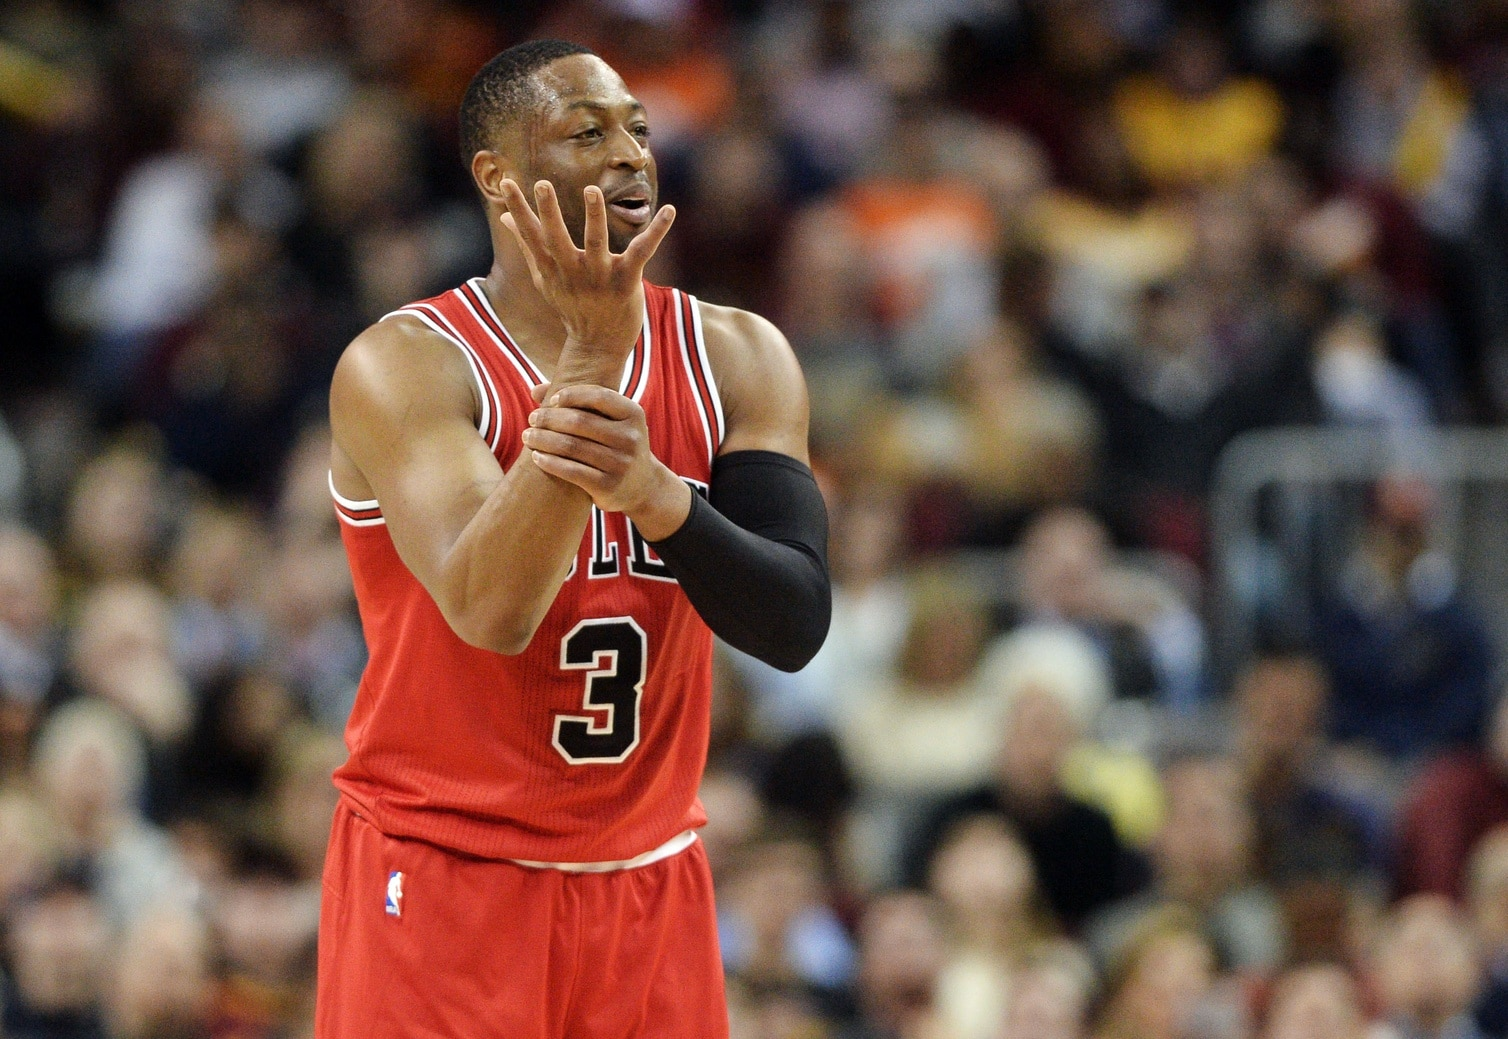 Feb 25, 2017; Cleveland, OH, USA; Chicago Bulls guard Dwyane Wade (3) reacts toward the Bulls bench after a play during the second half against the Cleveland Cavaliers at Quicken Loans Arena. The Bulls won 117-99. Mandatory Credit: Ken Blaze-USA TODAY Sports